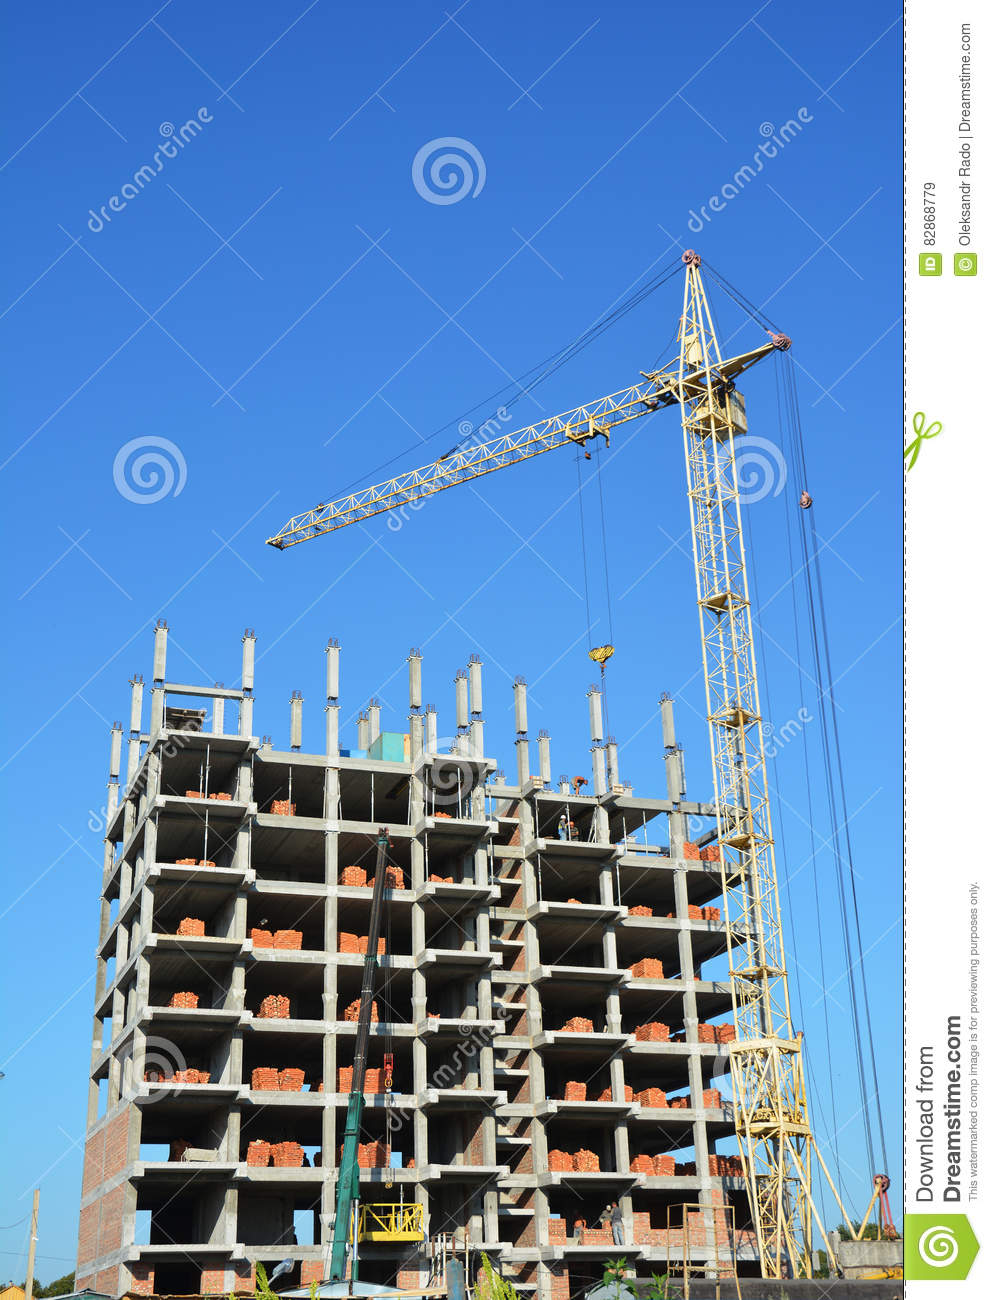 building cranes on construction site with builders building high